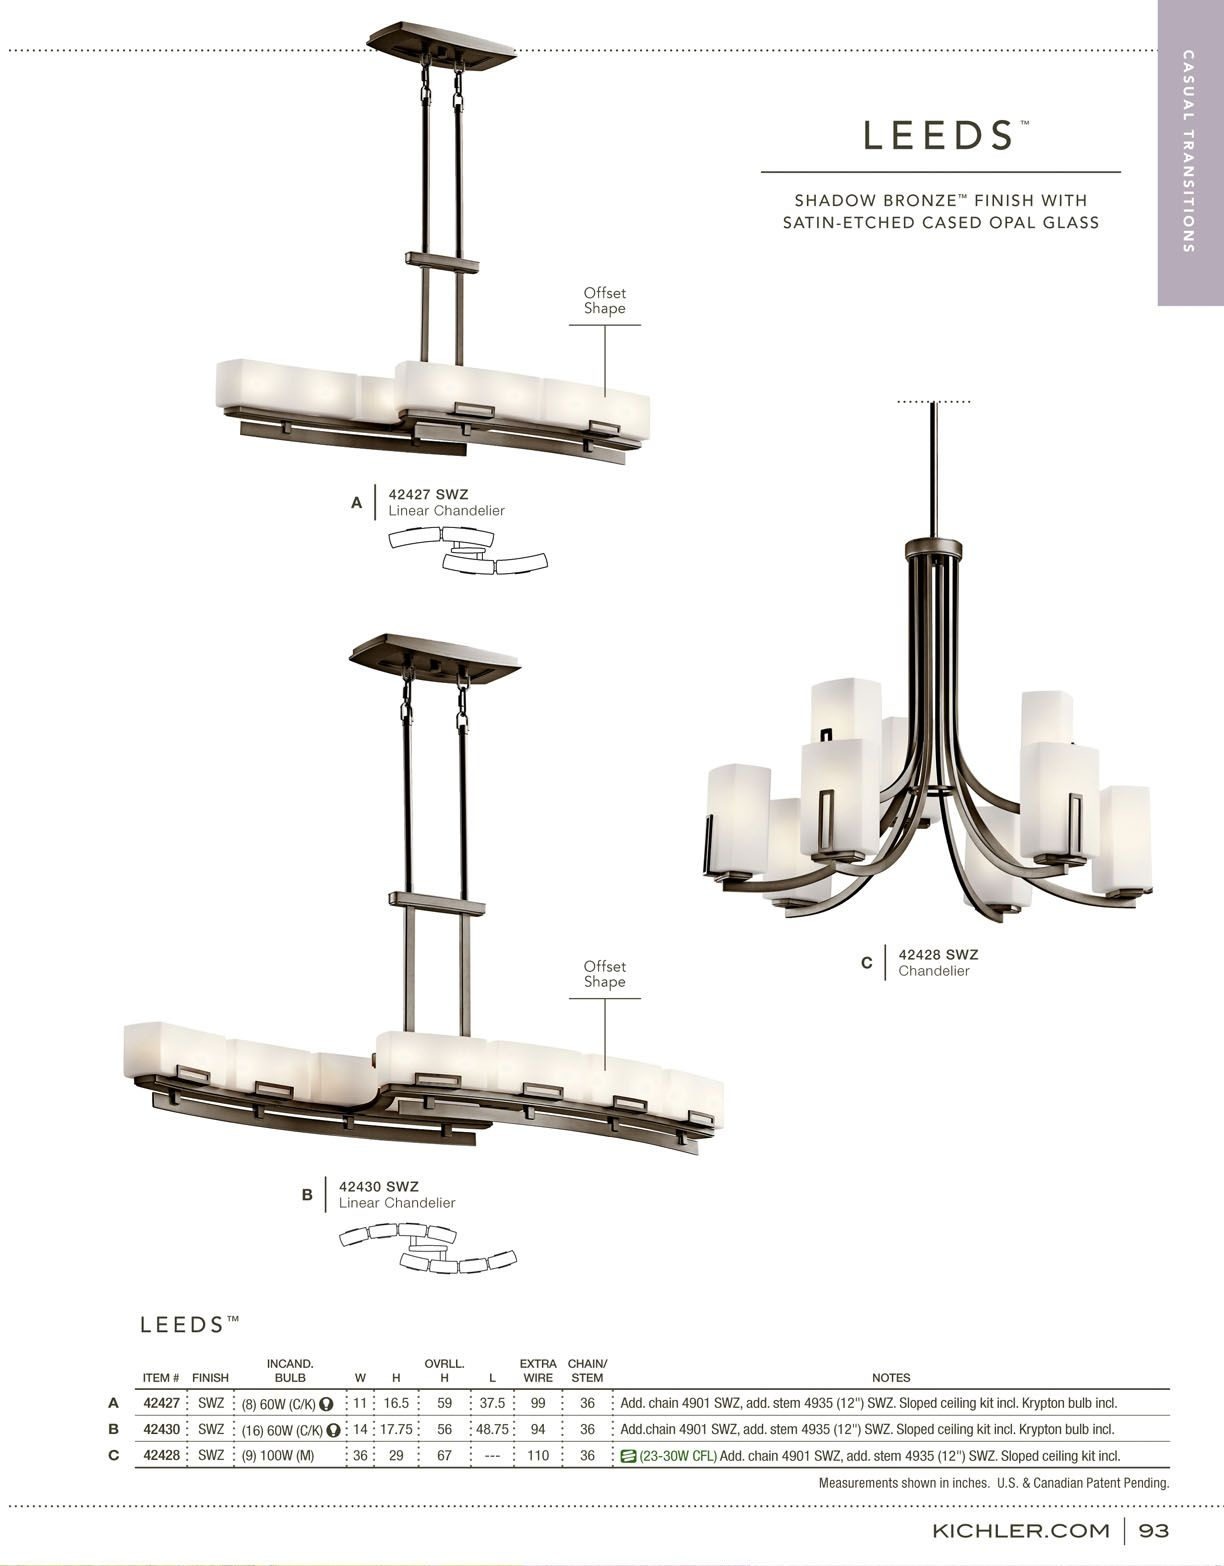 Kichler Source Book 2014 K114 Lights Pinterest Catalog And Wiring Diagram